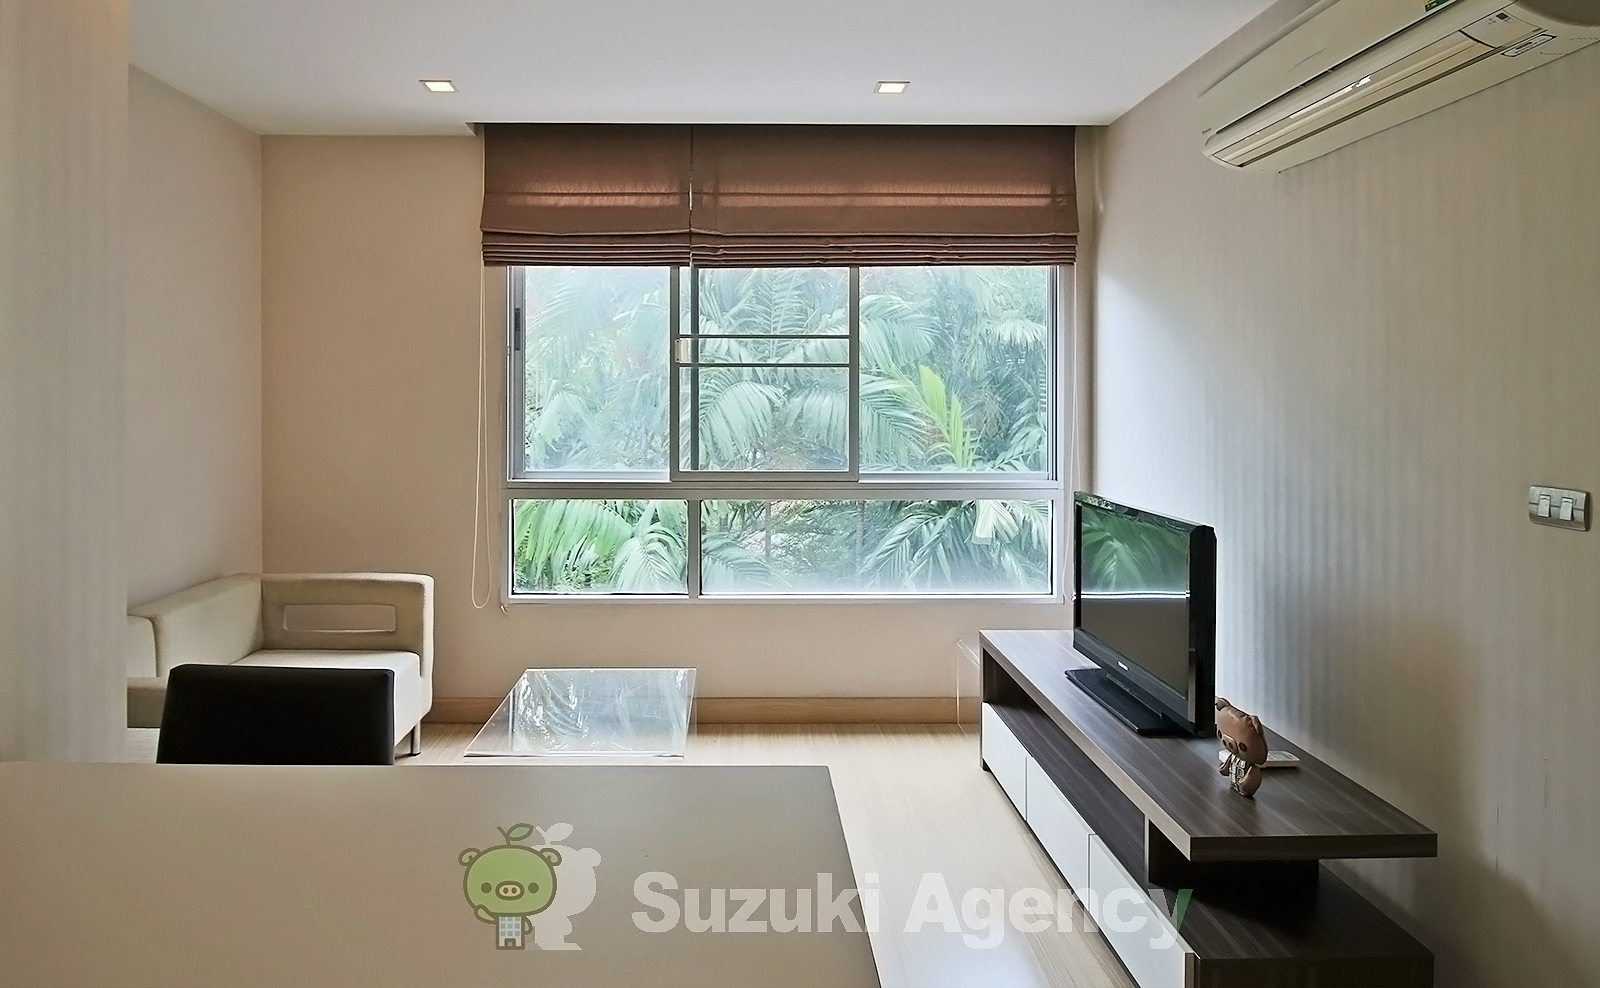 Tree Condo Sukhumvit 42:2Bed Room Photos No.4